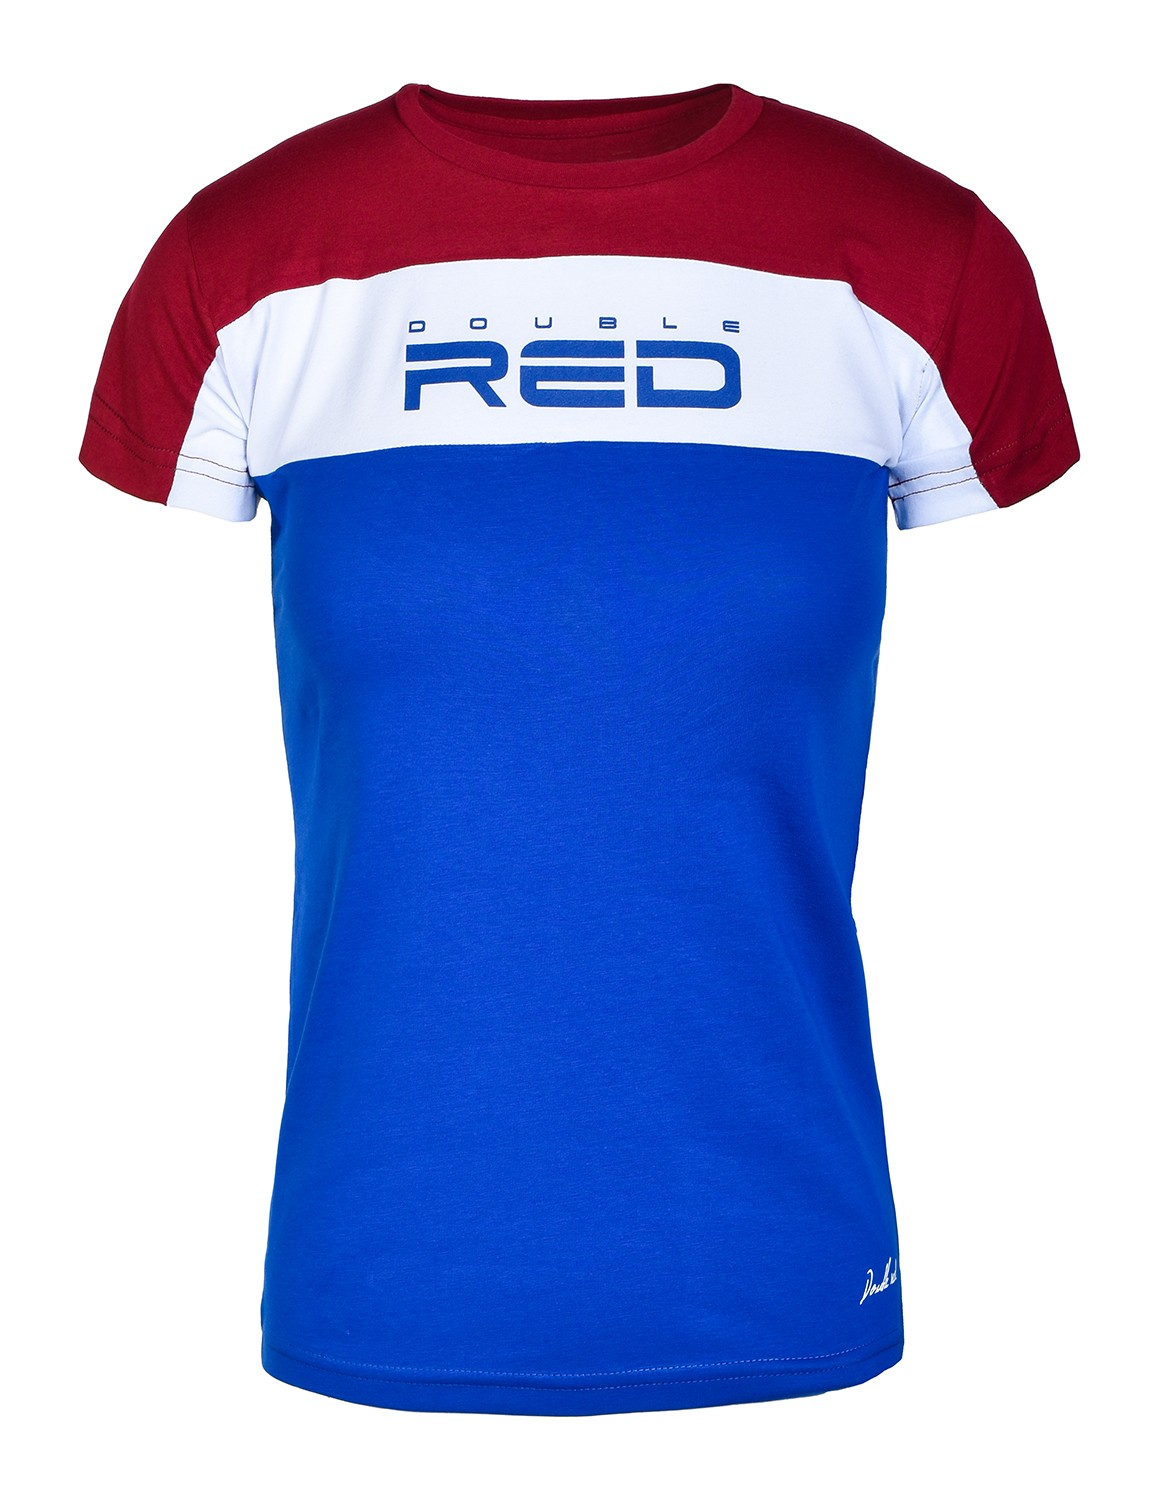 T-Shirt OUTSTANDING Red/Blue